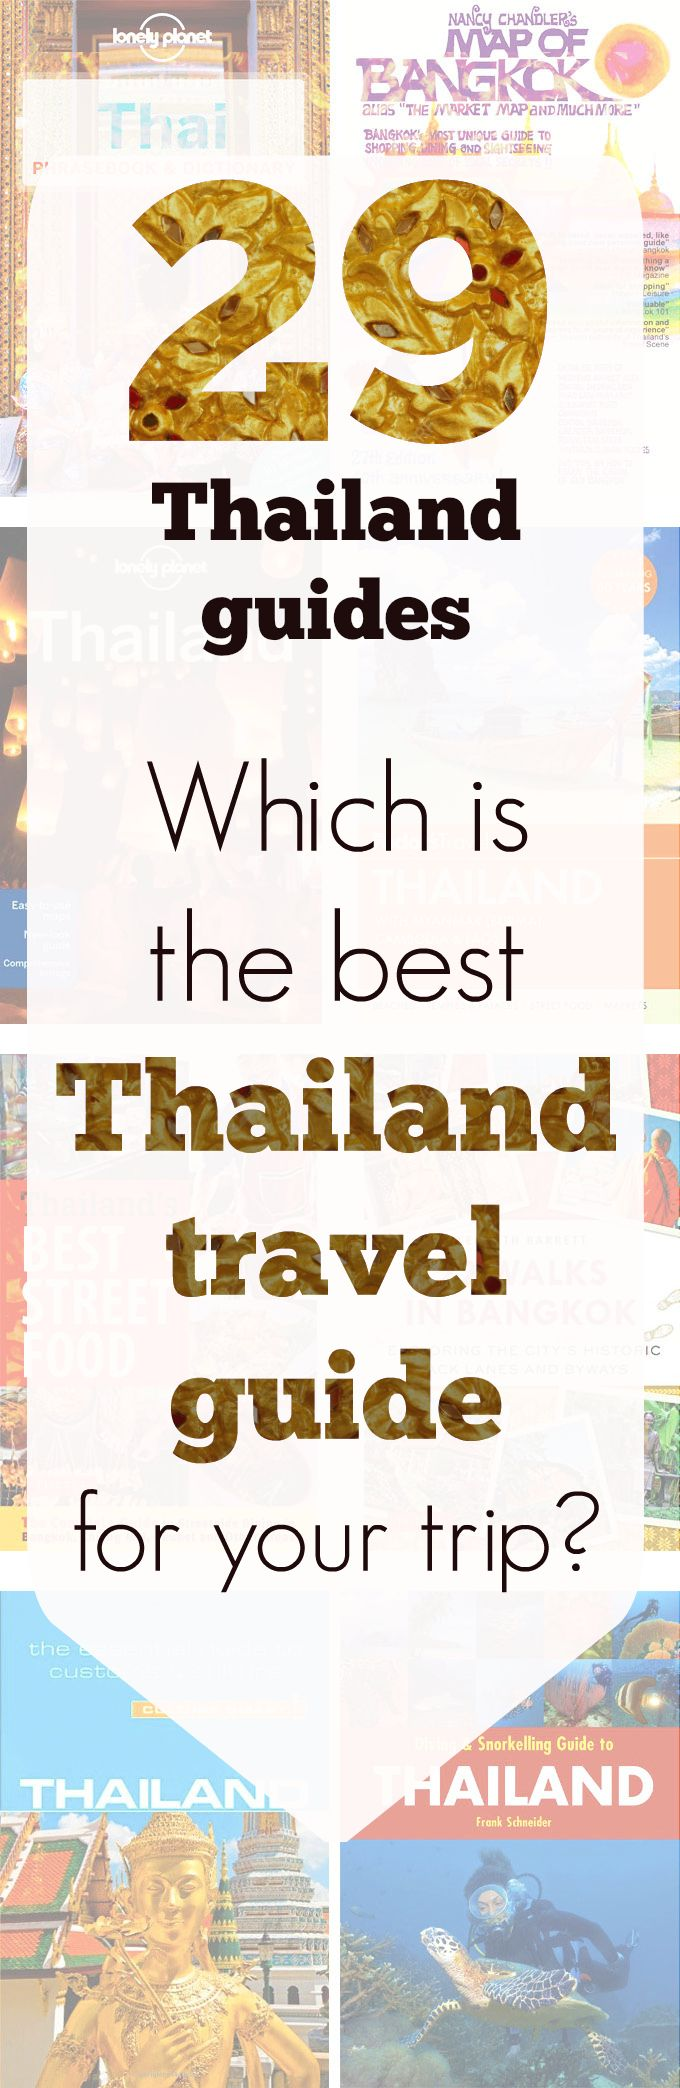 Thailand travel guide books: How to choose which one is best for you?